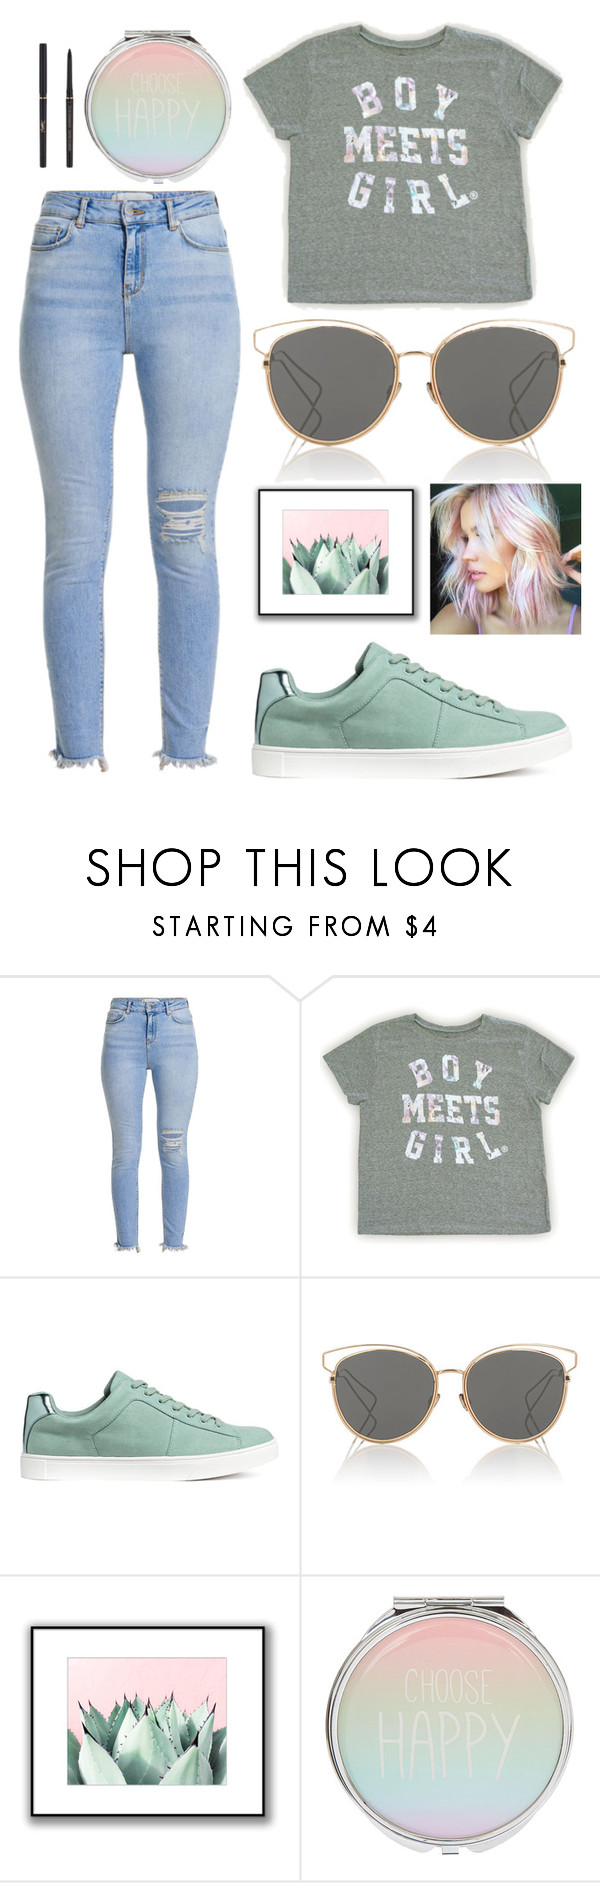 """""""Untitled #446"""" by angela229 ❤ liked on Polyvore featuring H&M, Christian Dior and Yves Saint Laurent"""